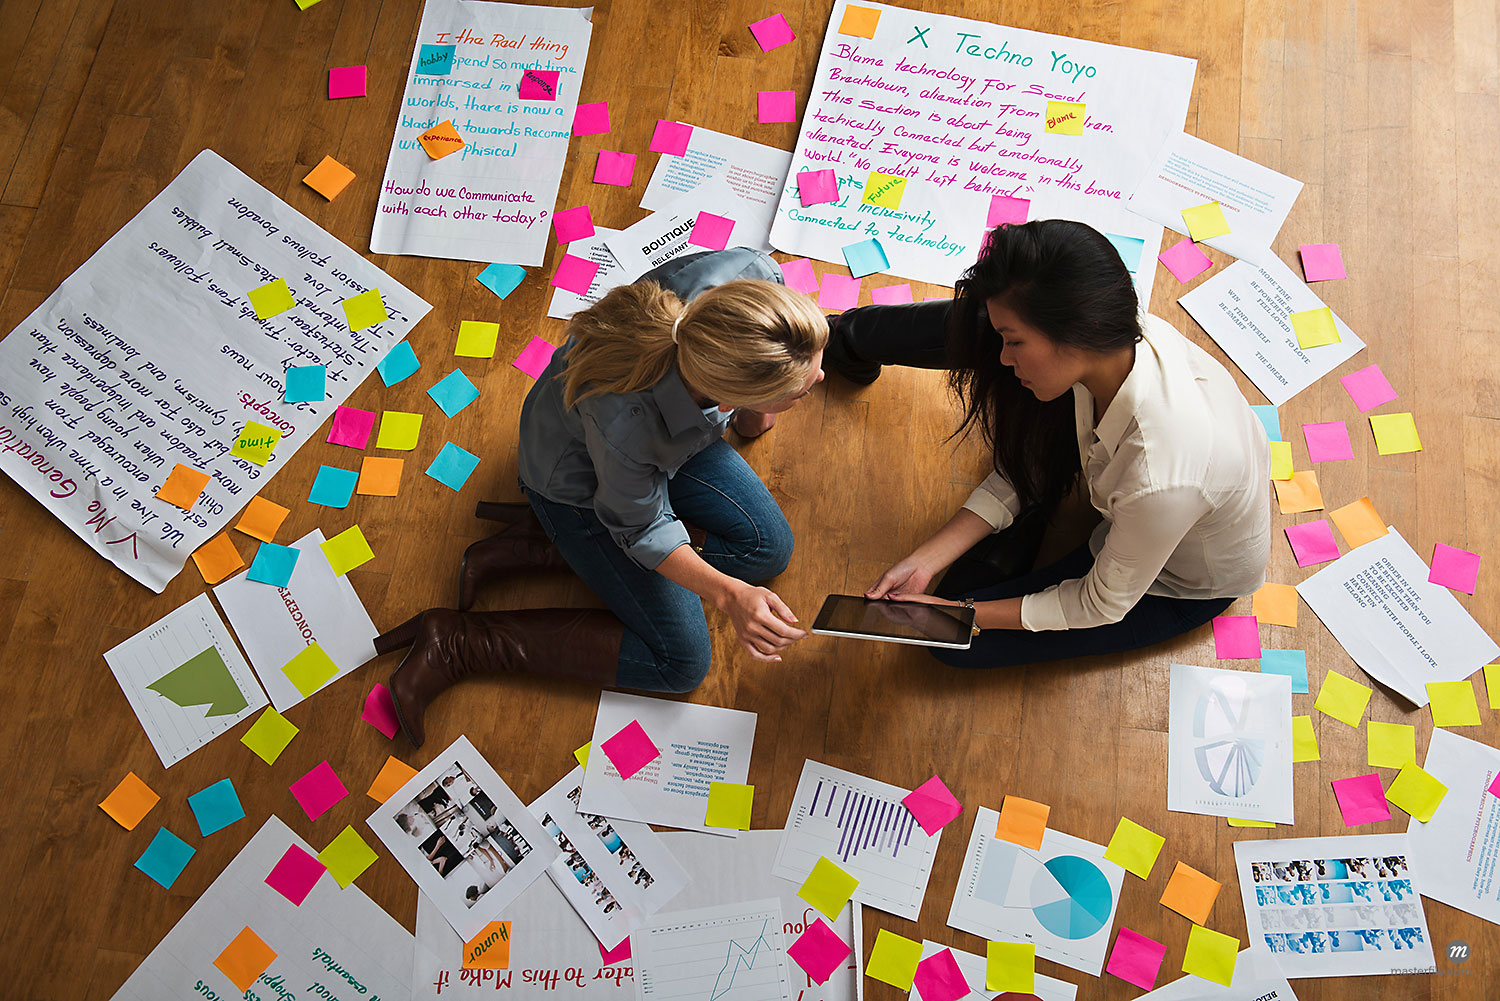 Colleagues with tablet sitting on floor surrounded by paper and colourful notes  © Masterfile